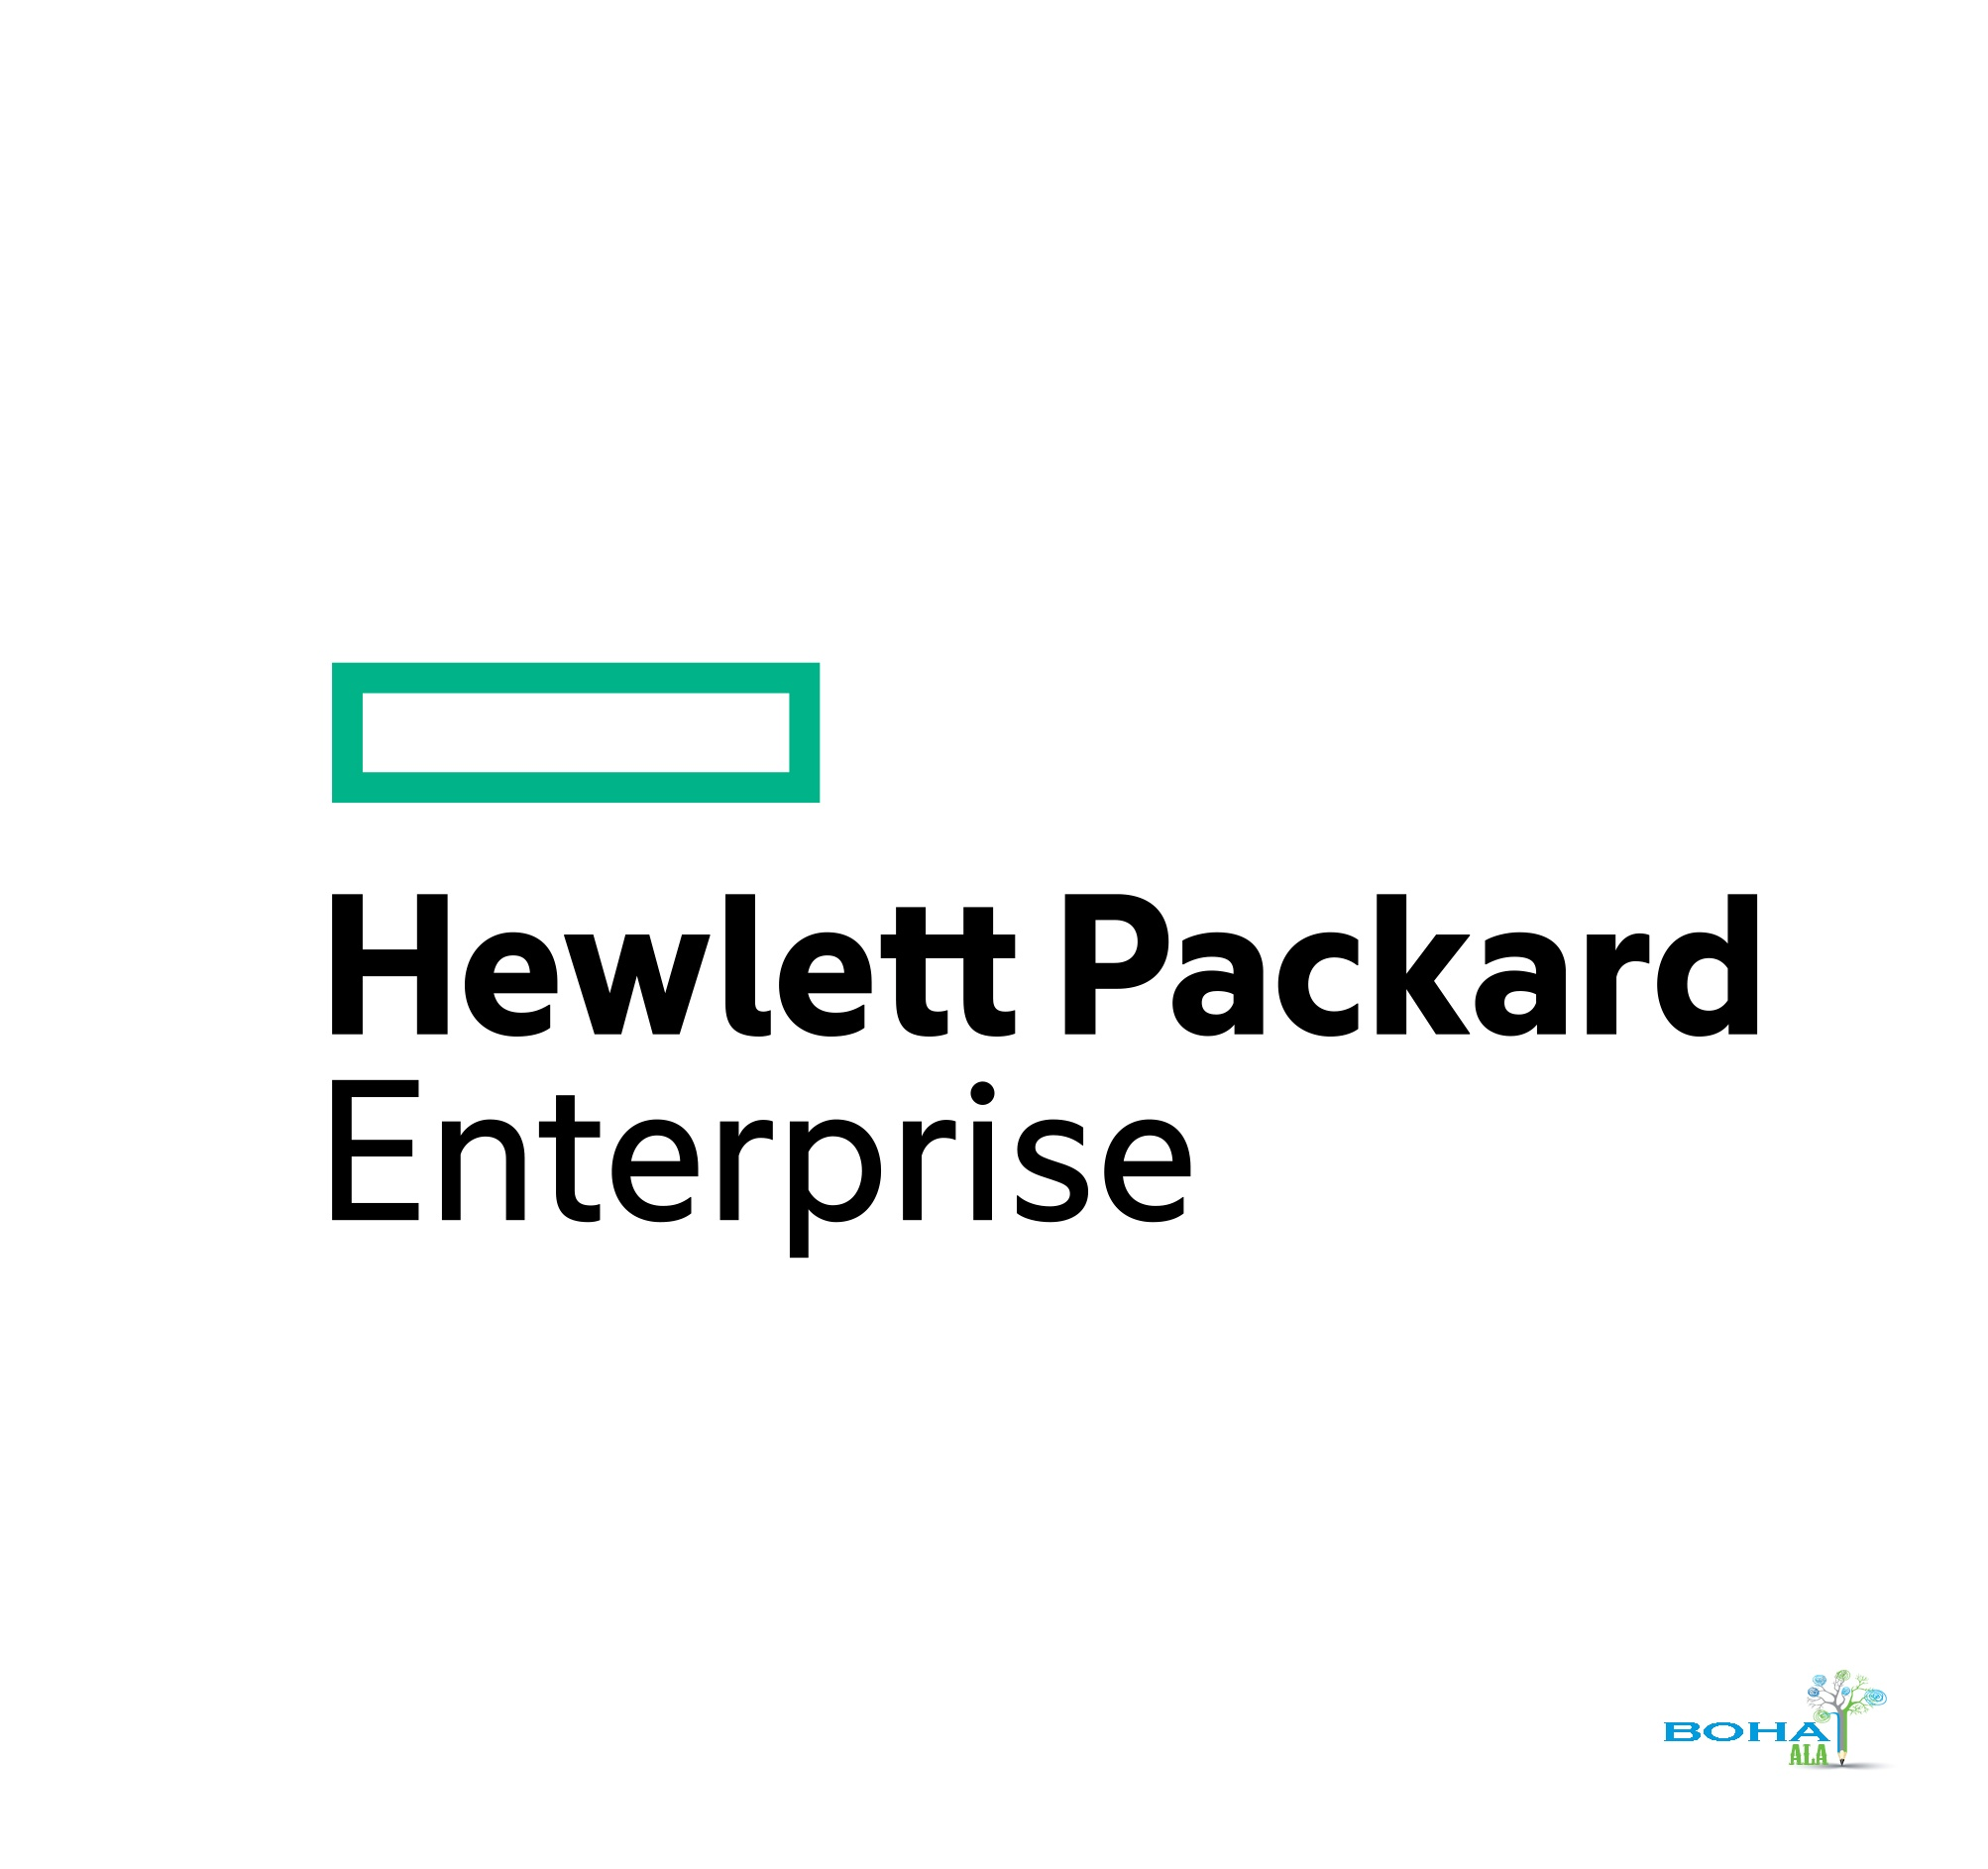 HP Hewlett Packard Enterprise and Distribution Overview Report